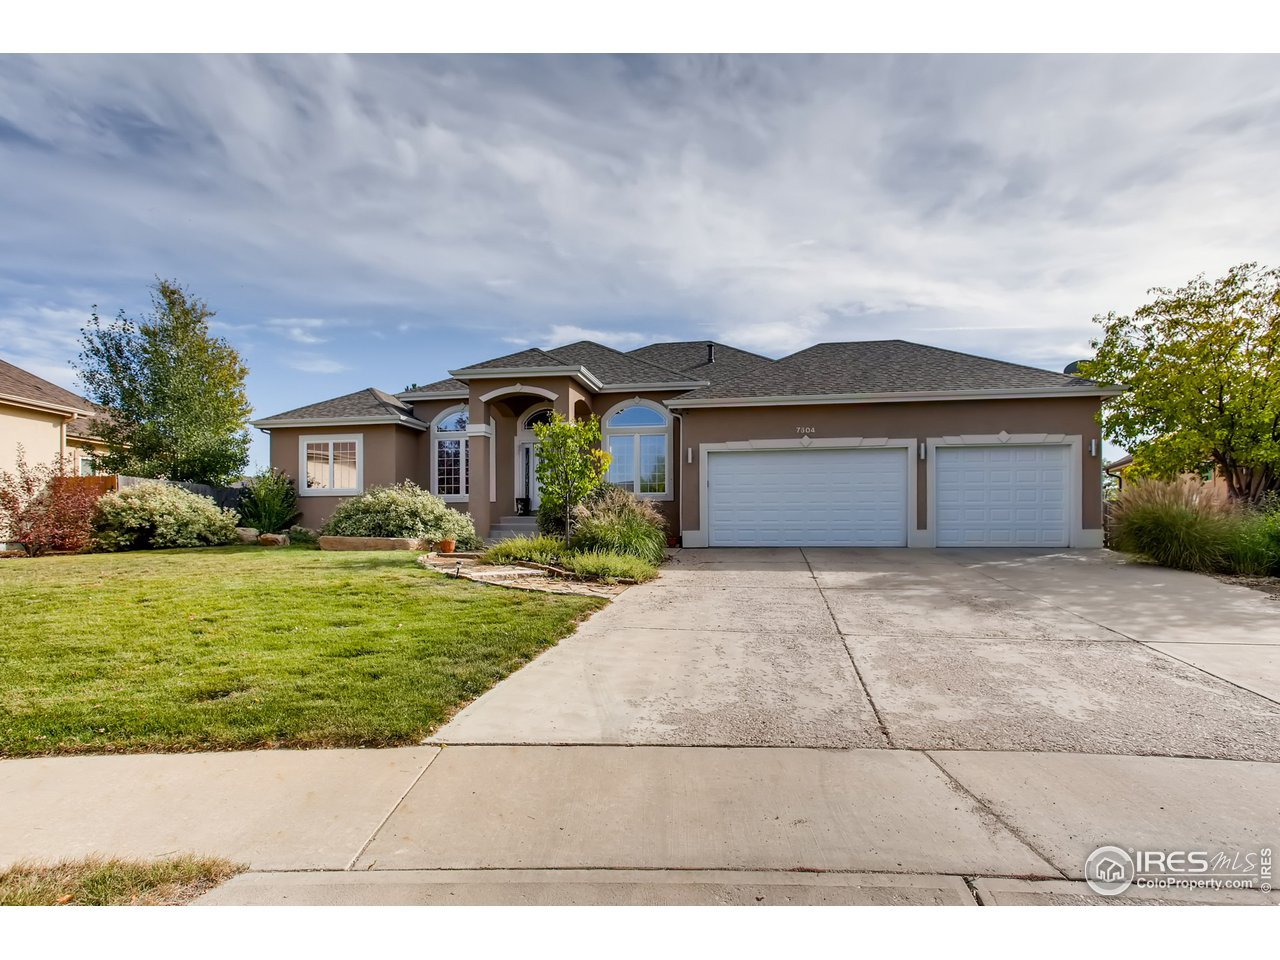 7604 19th St Rd, Greeley CO 80634